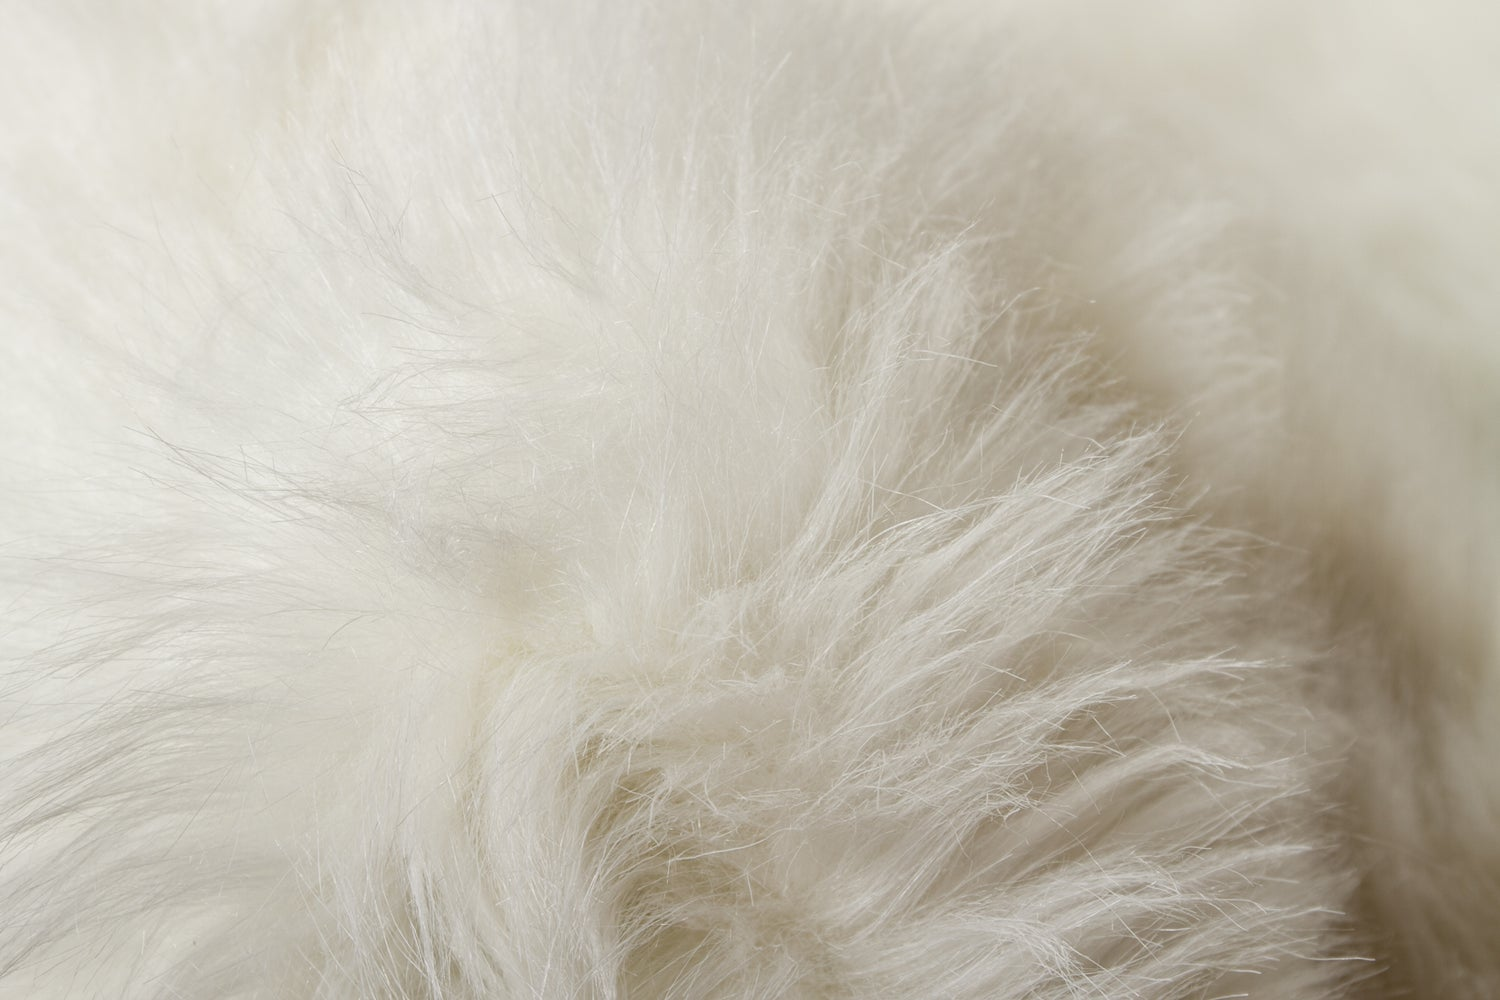 Image of 676685029706 GORDON FAUX SHEEPSKIN THROW 2'X3' OFF WHITE